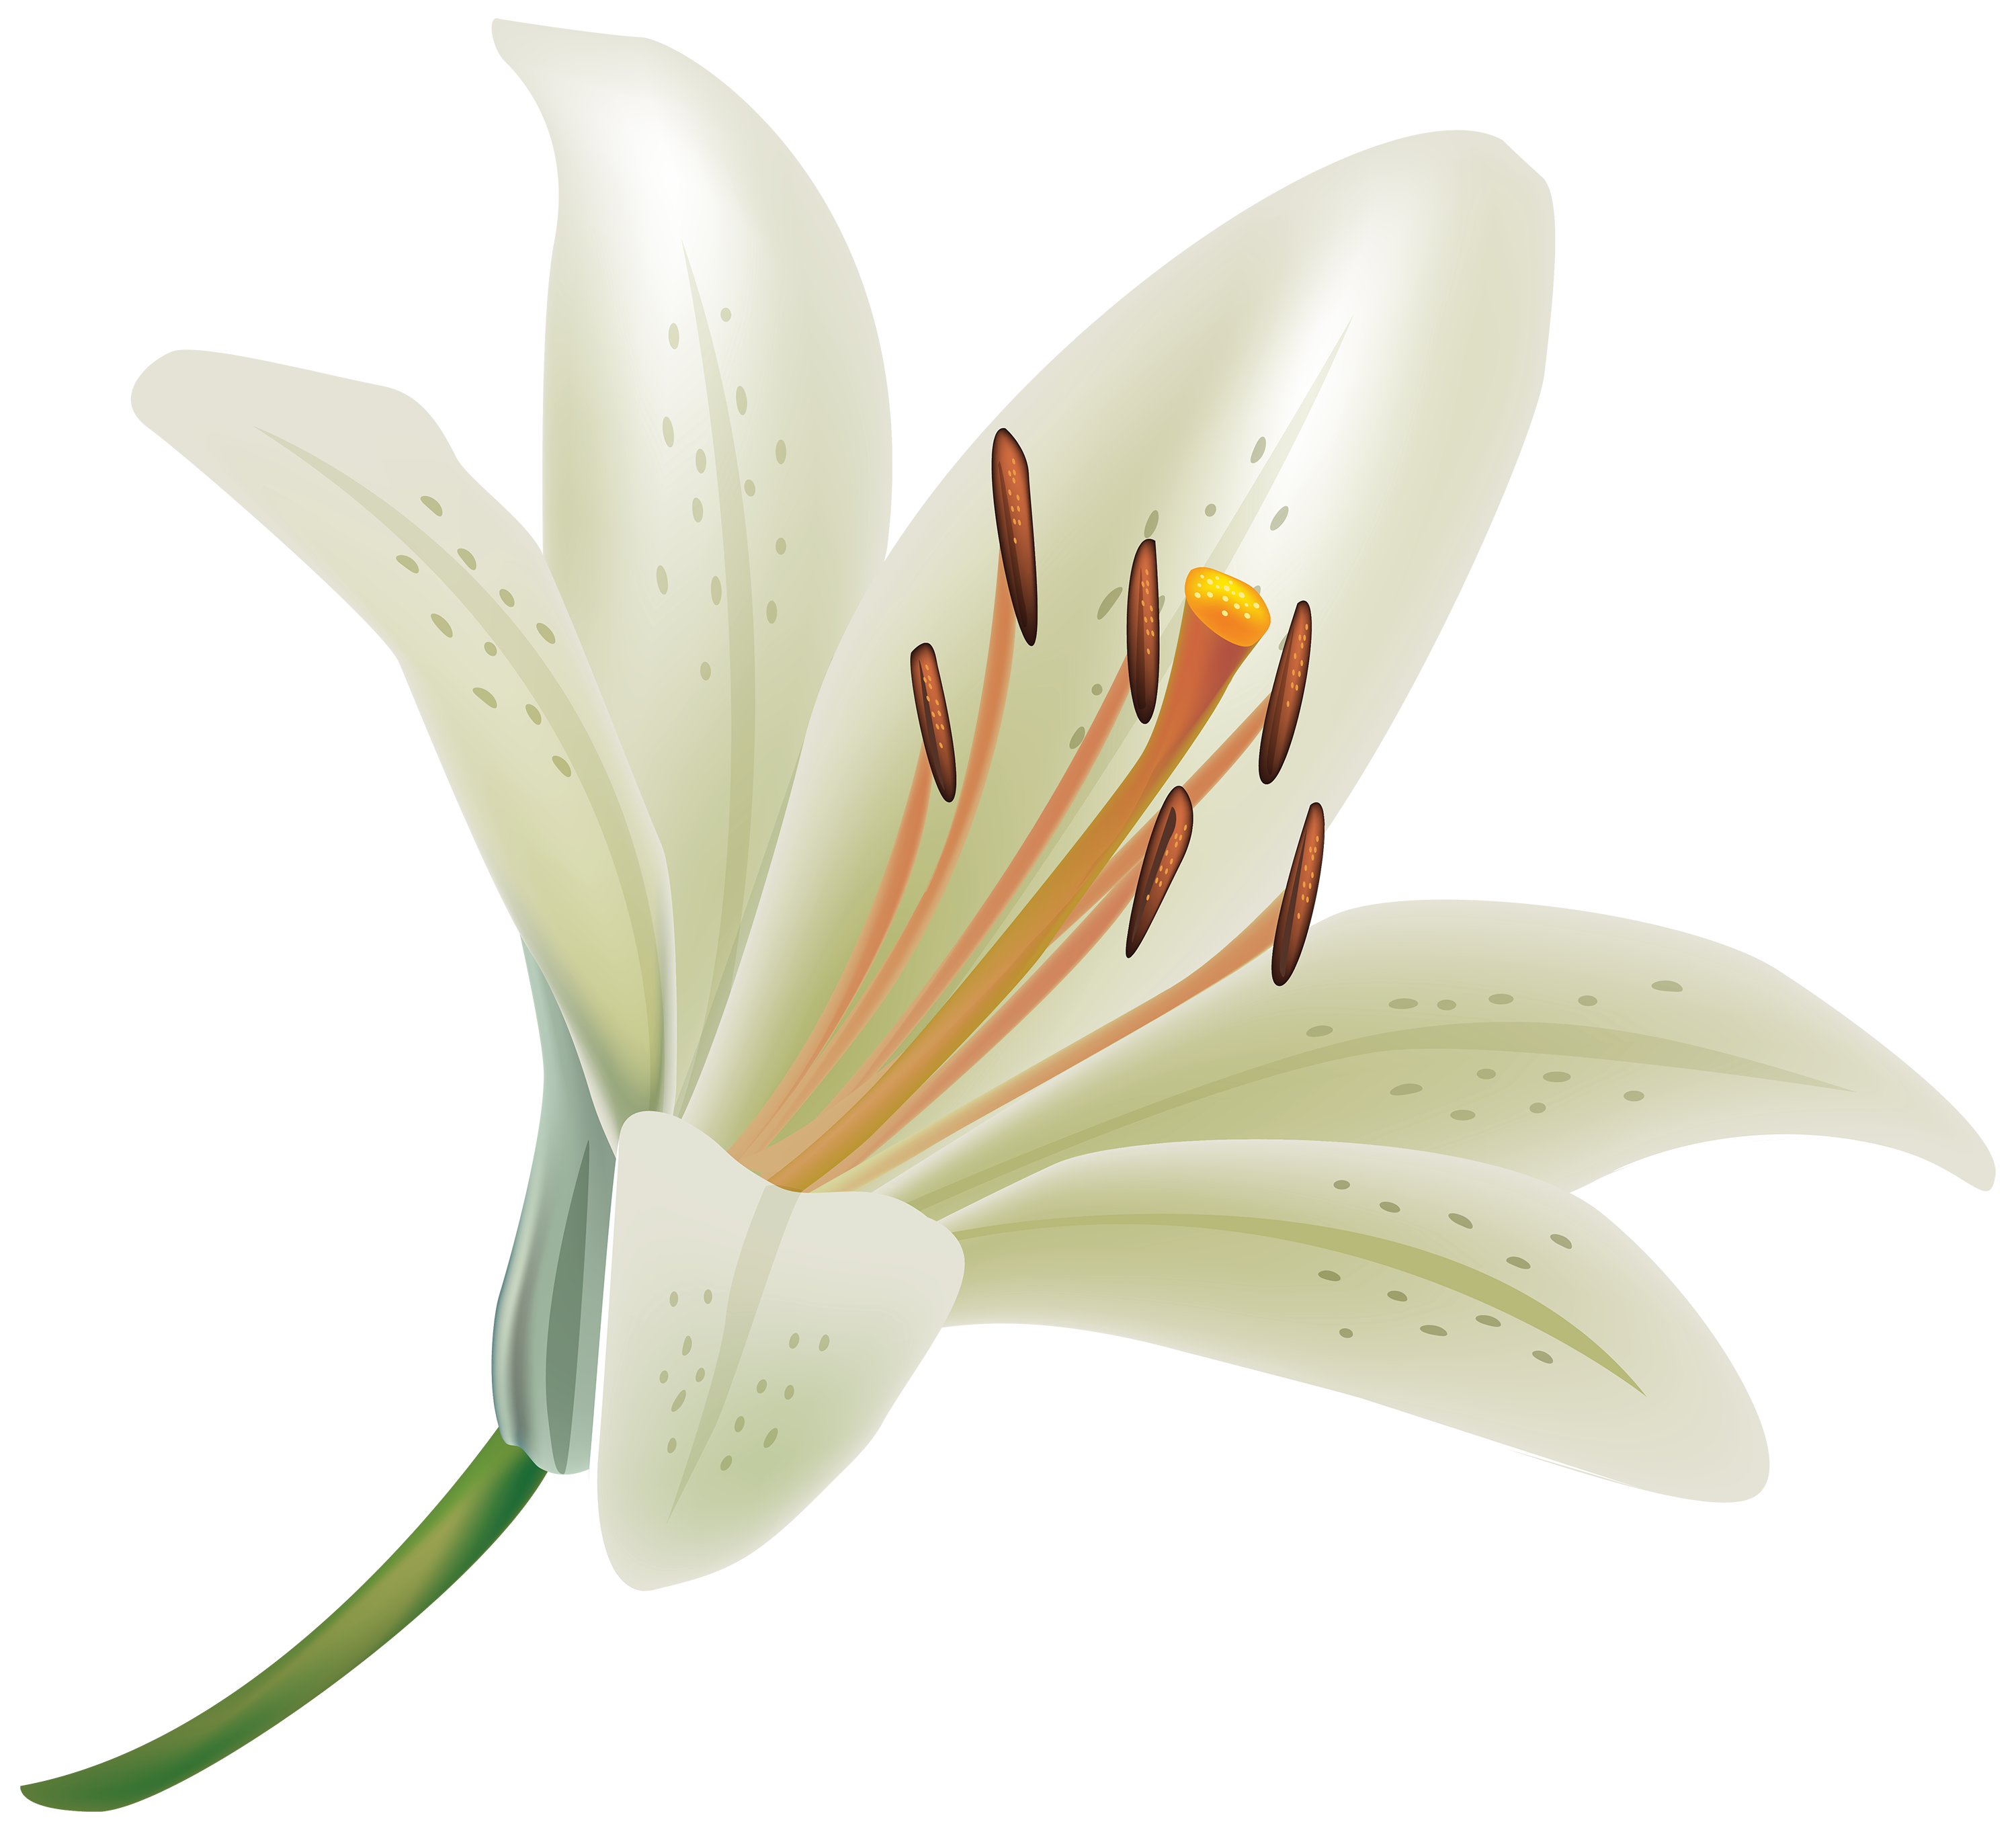 Pin by lily webster on tat ideas pinterest white lily flower discover ideas about white lily flower izmirmasajfo